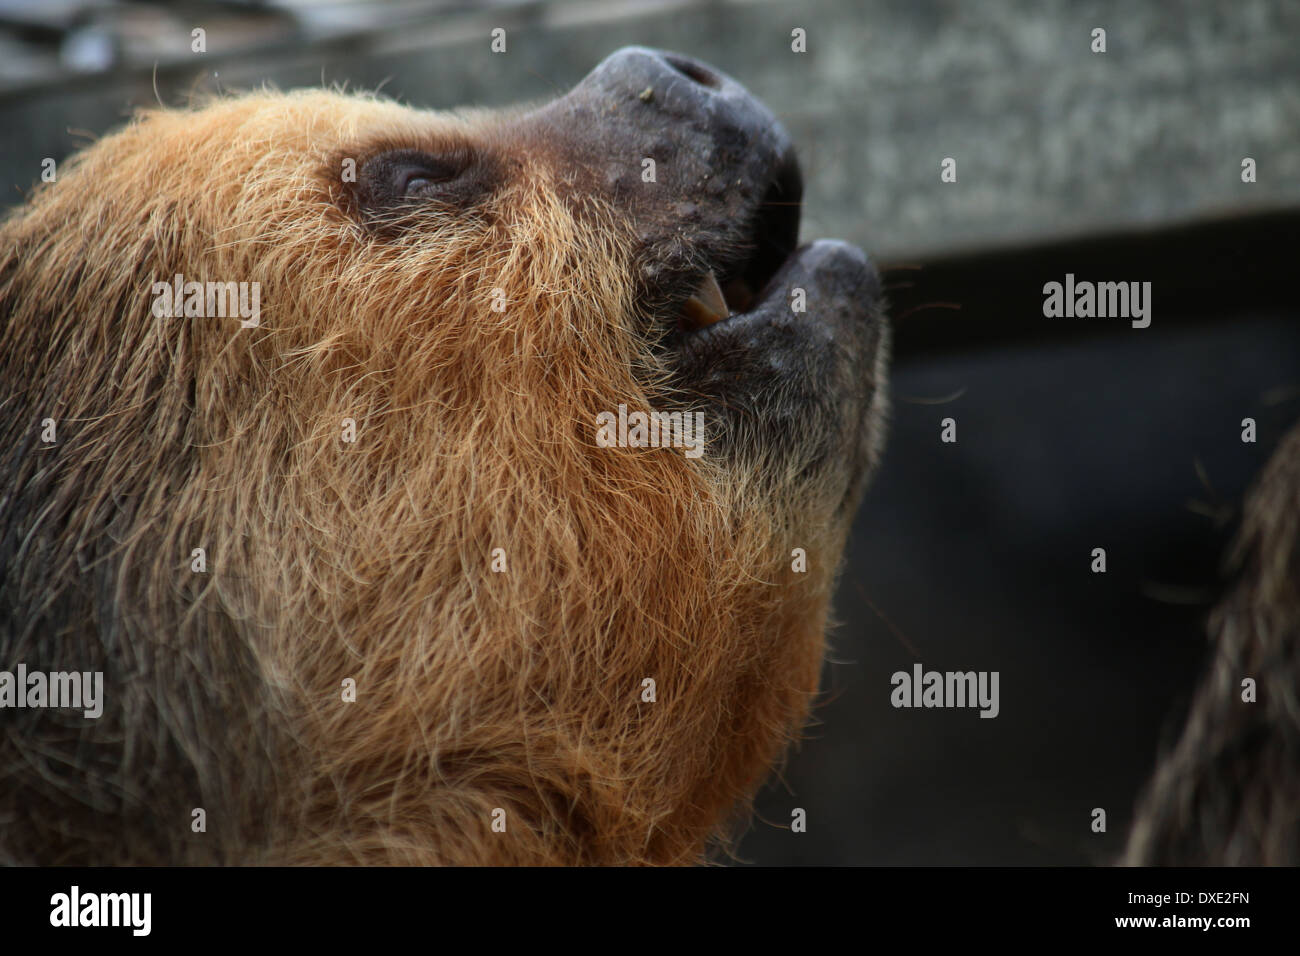 Hoffmann's two-toed sloth (Choloepus hoffmanni) close-up of the head Stock Photo